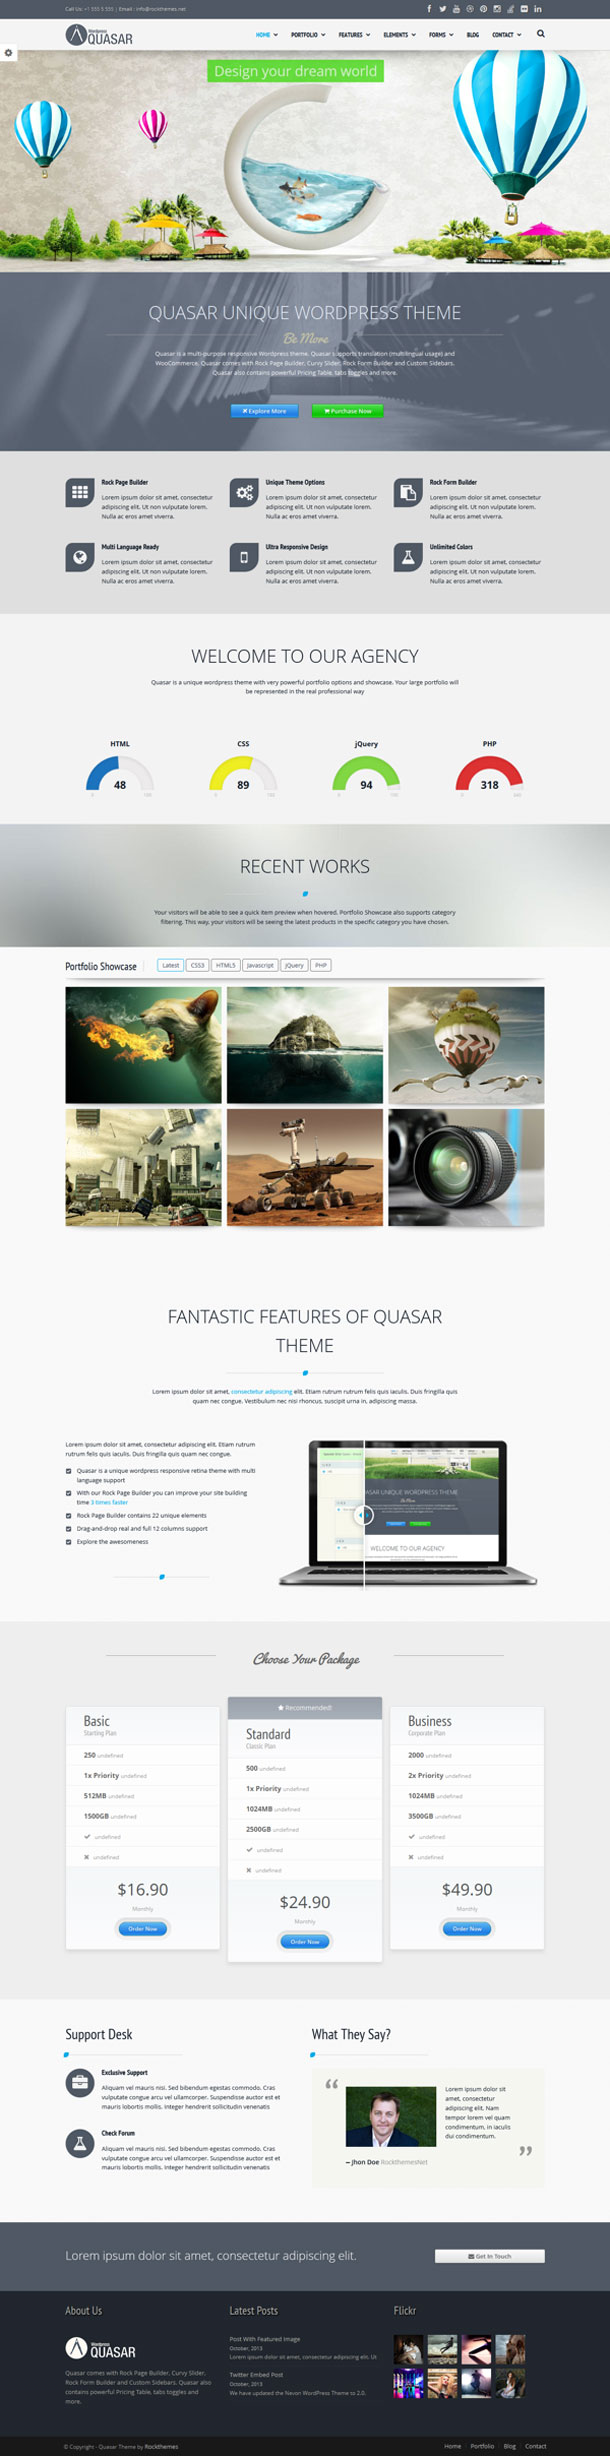 Quasar Best WP Construction Company Theme Image